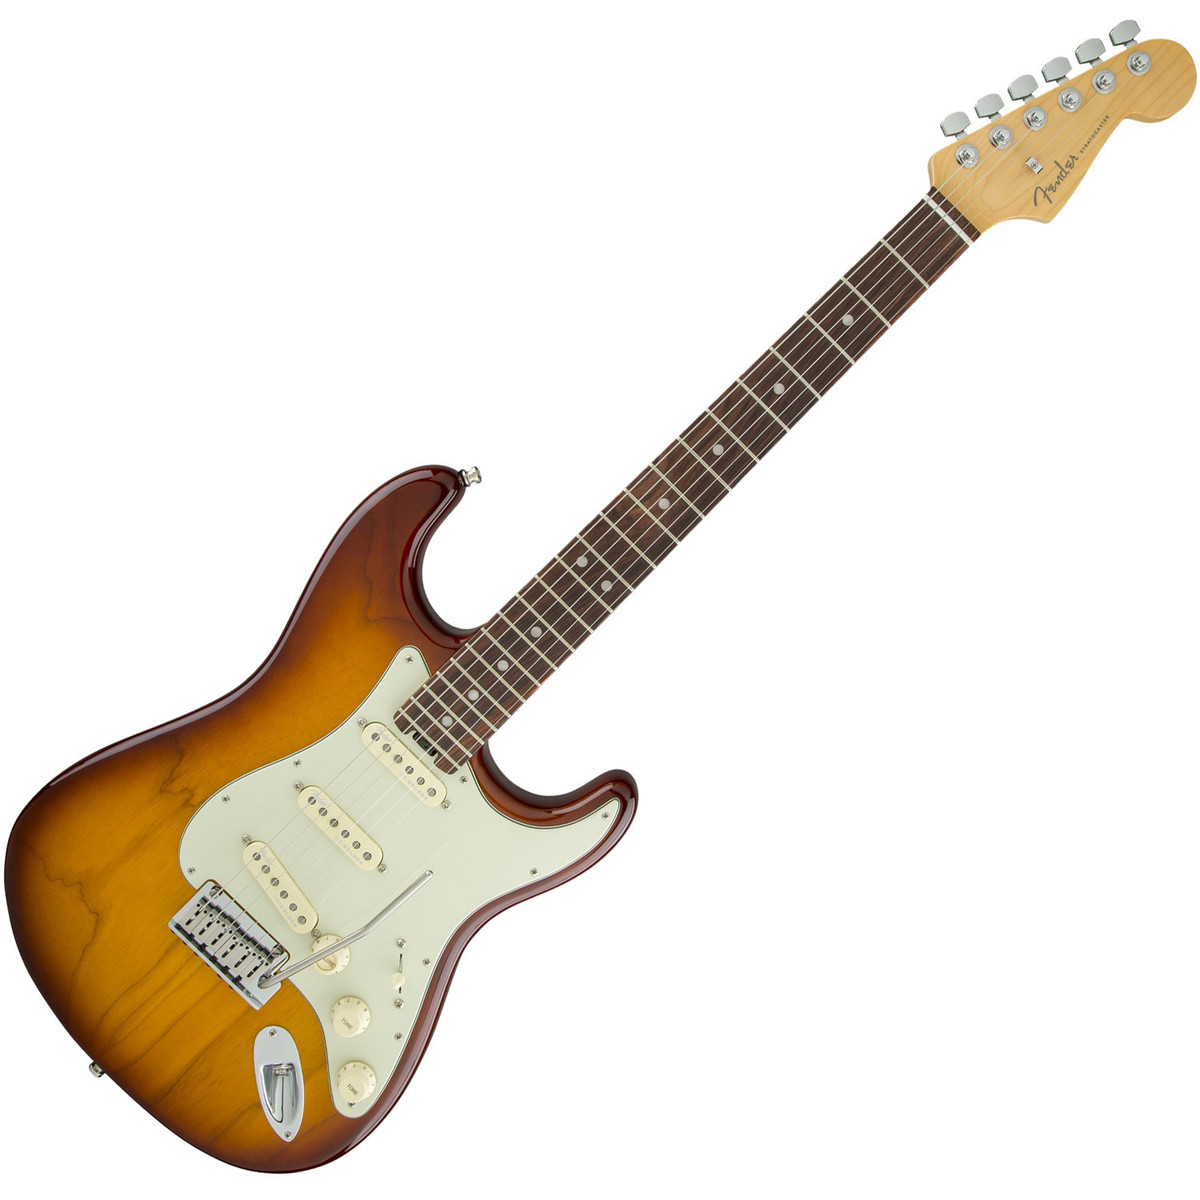 fender american elite stratocaster rw tobacco sunburst at. Black Bedroom Furniture Sets. Home Design Ideas